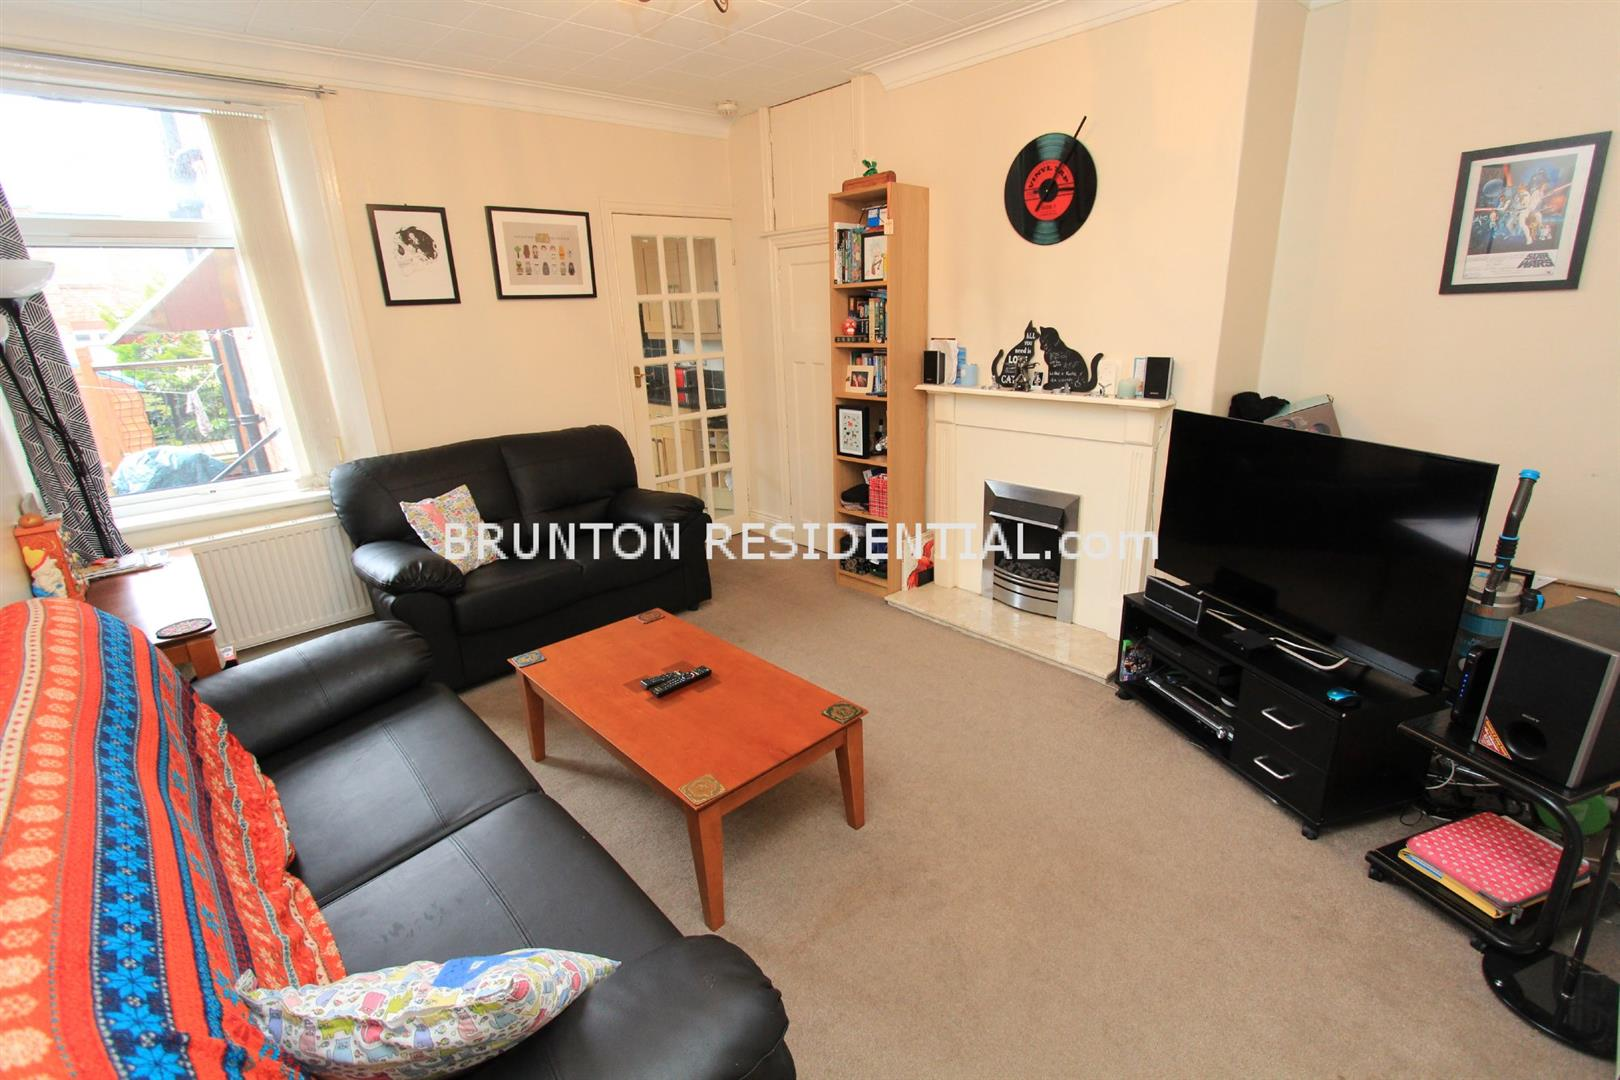 2 bed flat to rent in Newcastle Upon Tyne, NE6 5DE - Property Image 1